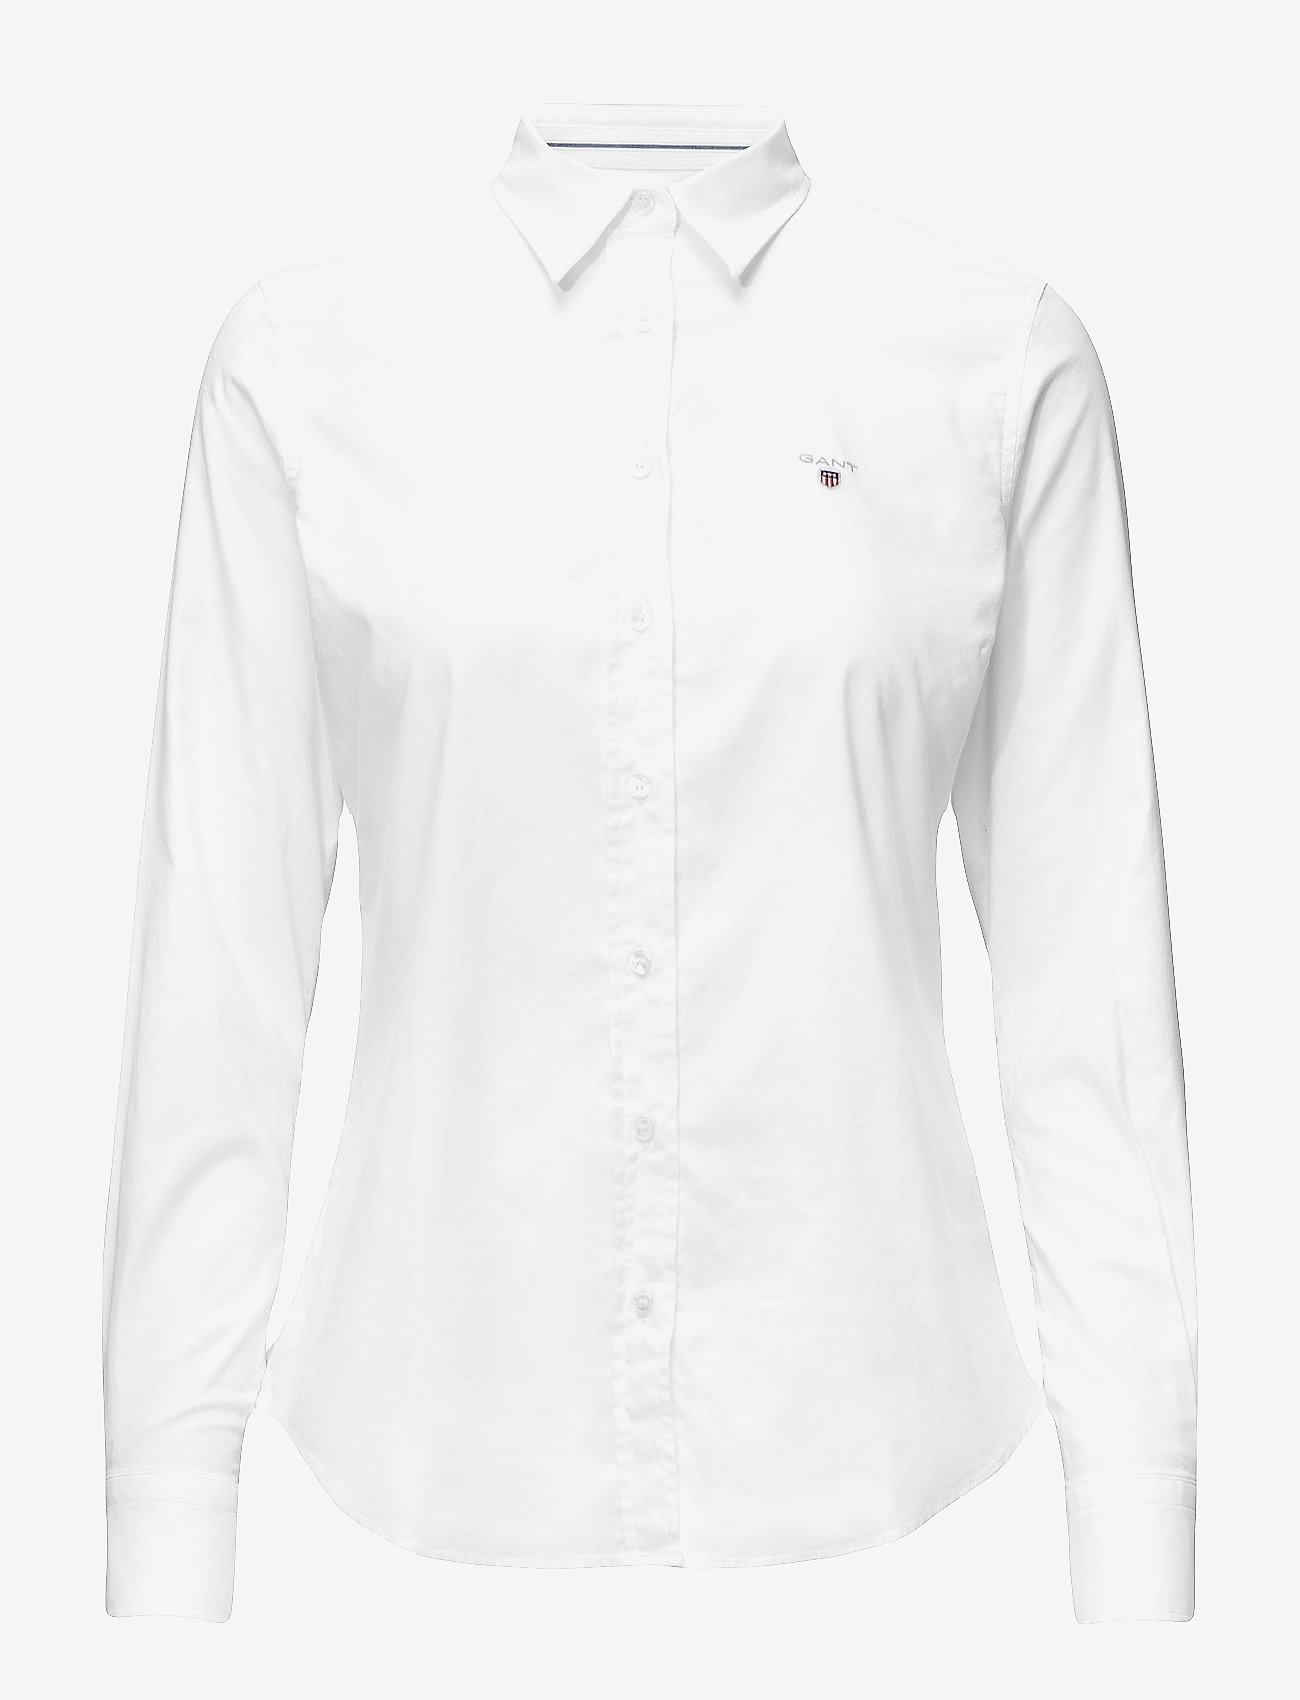 GANT - STRETCH OXFORD SOLID - long-sleeved shirts - white - 0